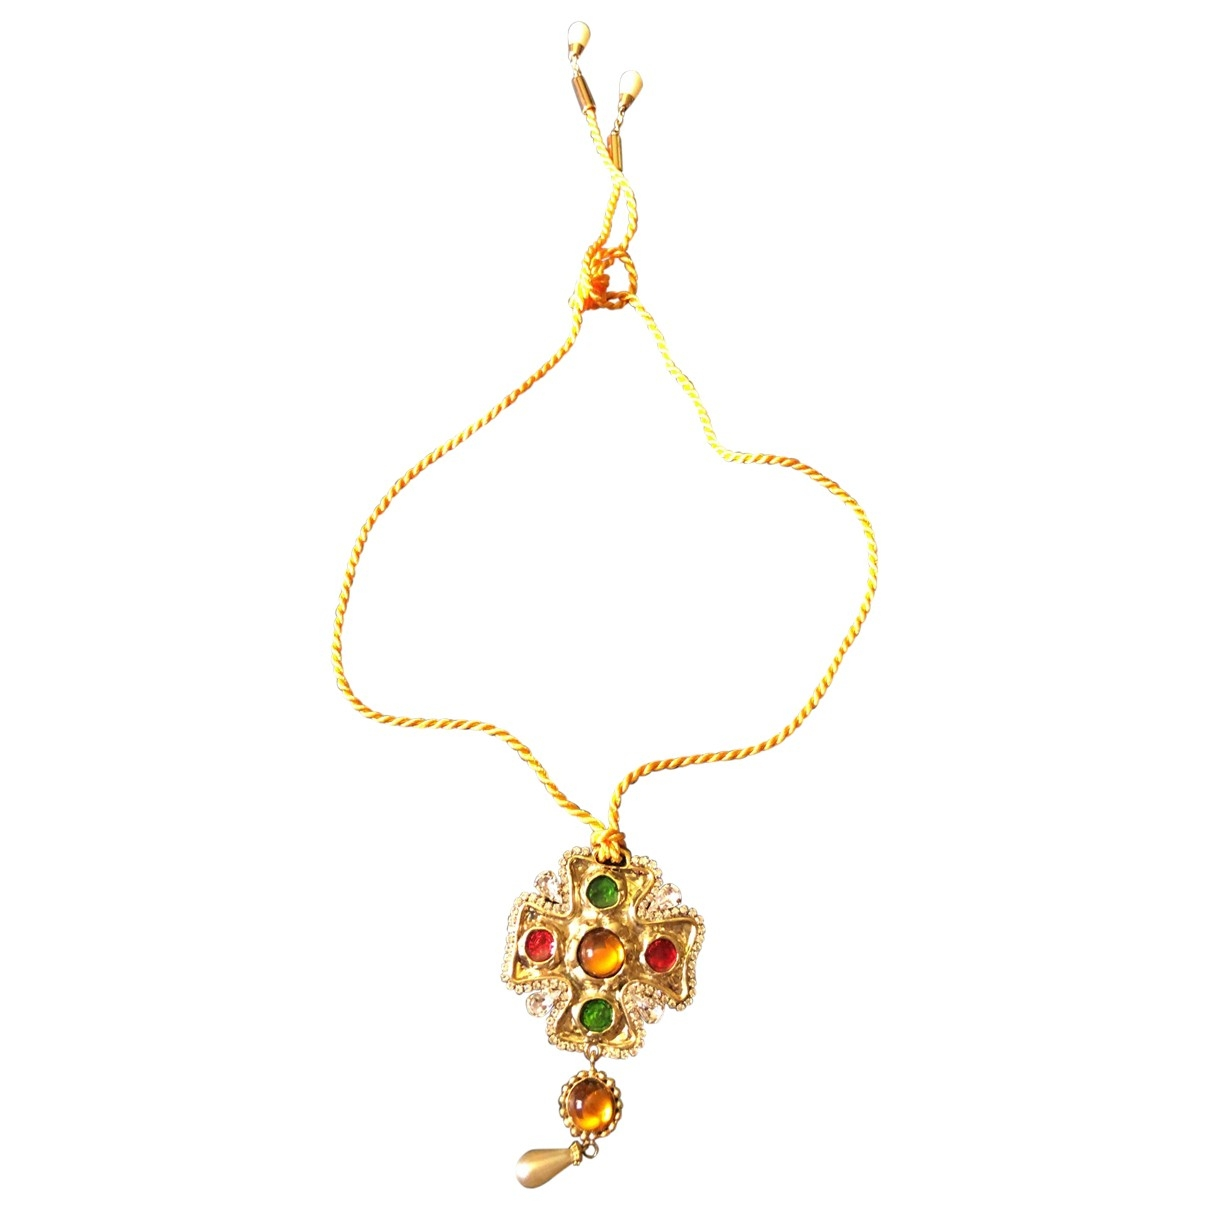 Dolce & Gabbana \N Yellow Gold plated necklace for Women \N